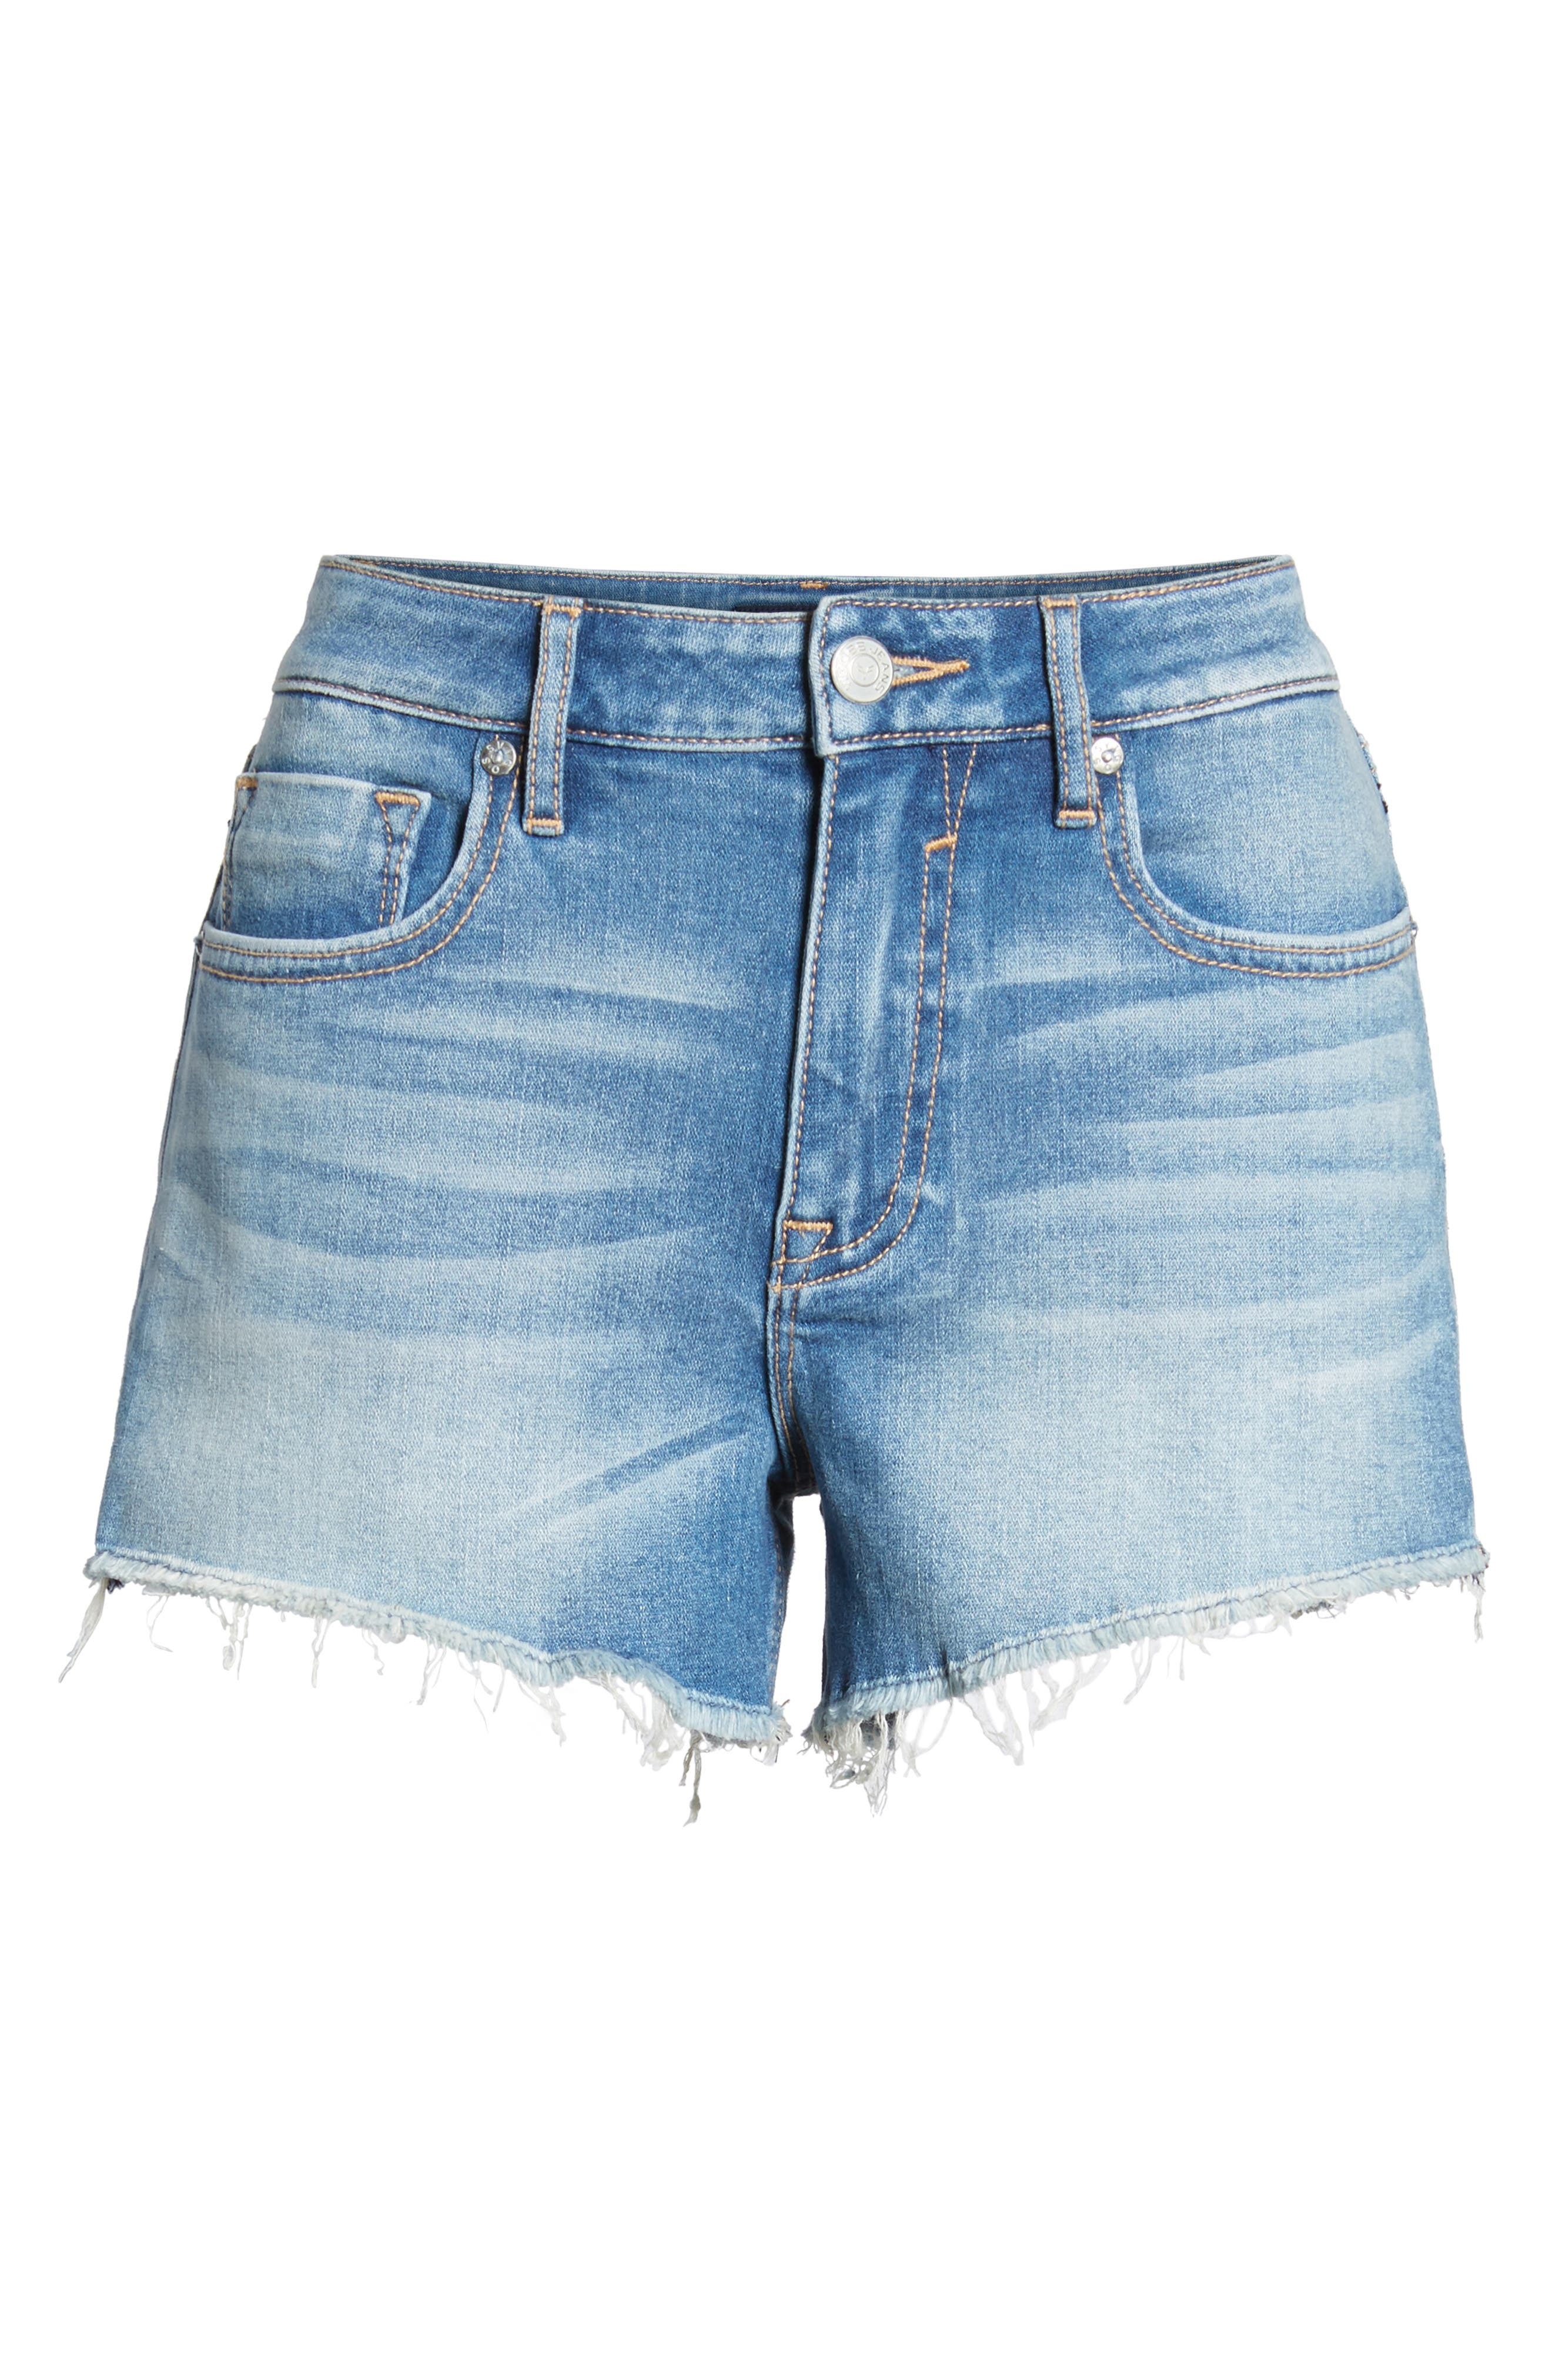 Jagger Shadow Pocket Denim Shorts,                             Alternate thumbnail 6, color,                             461